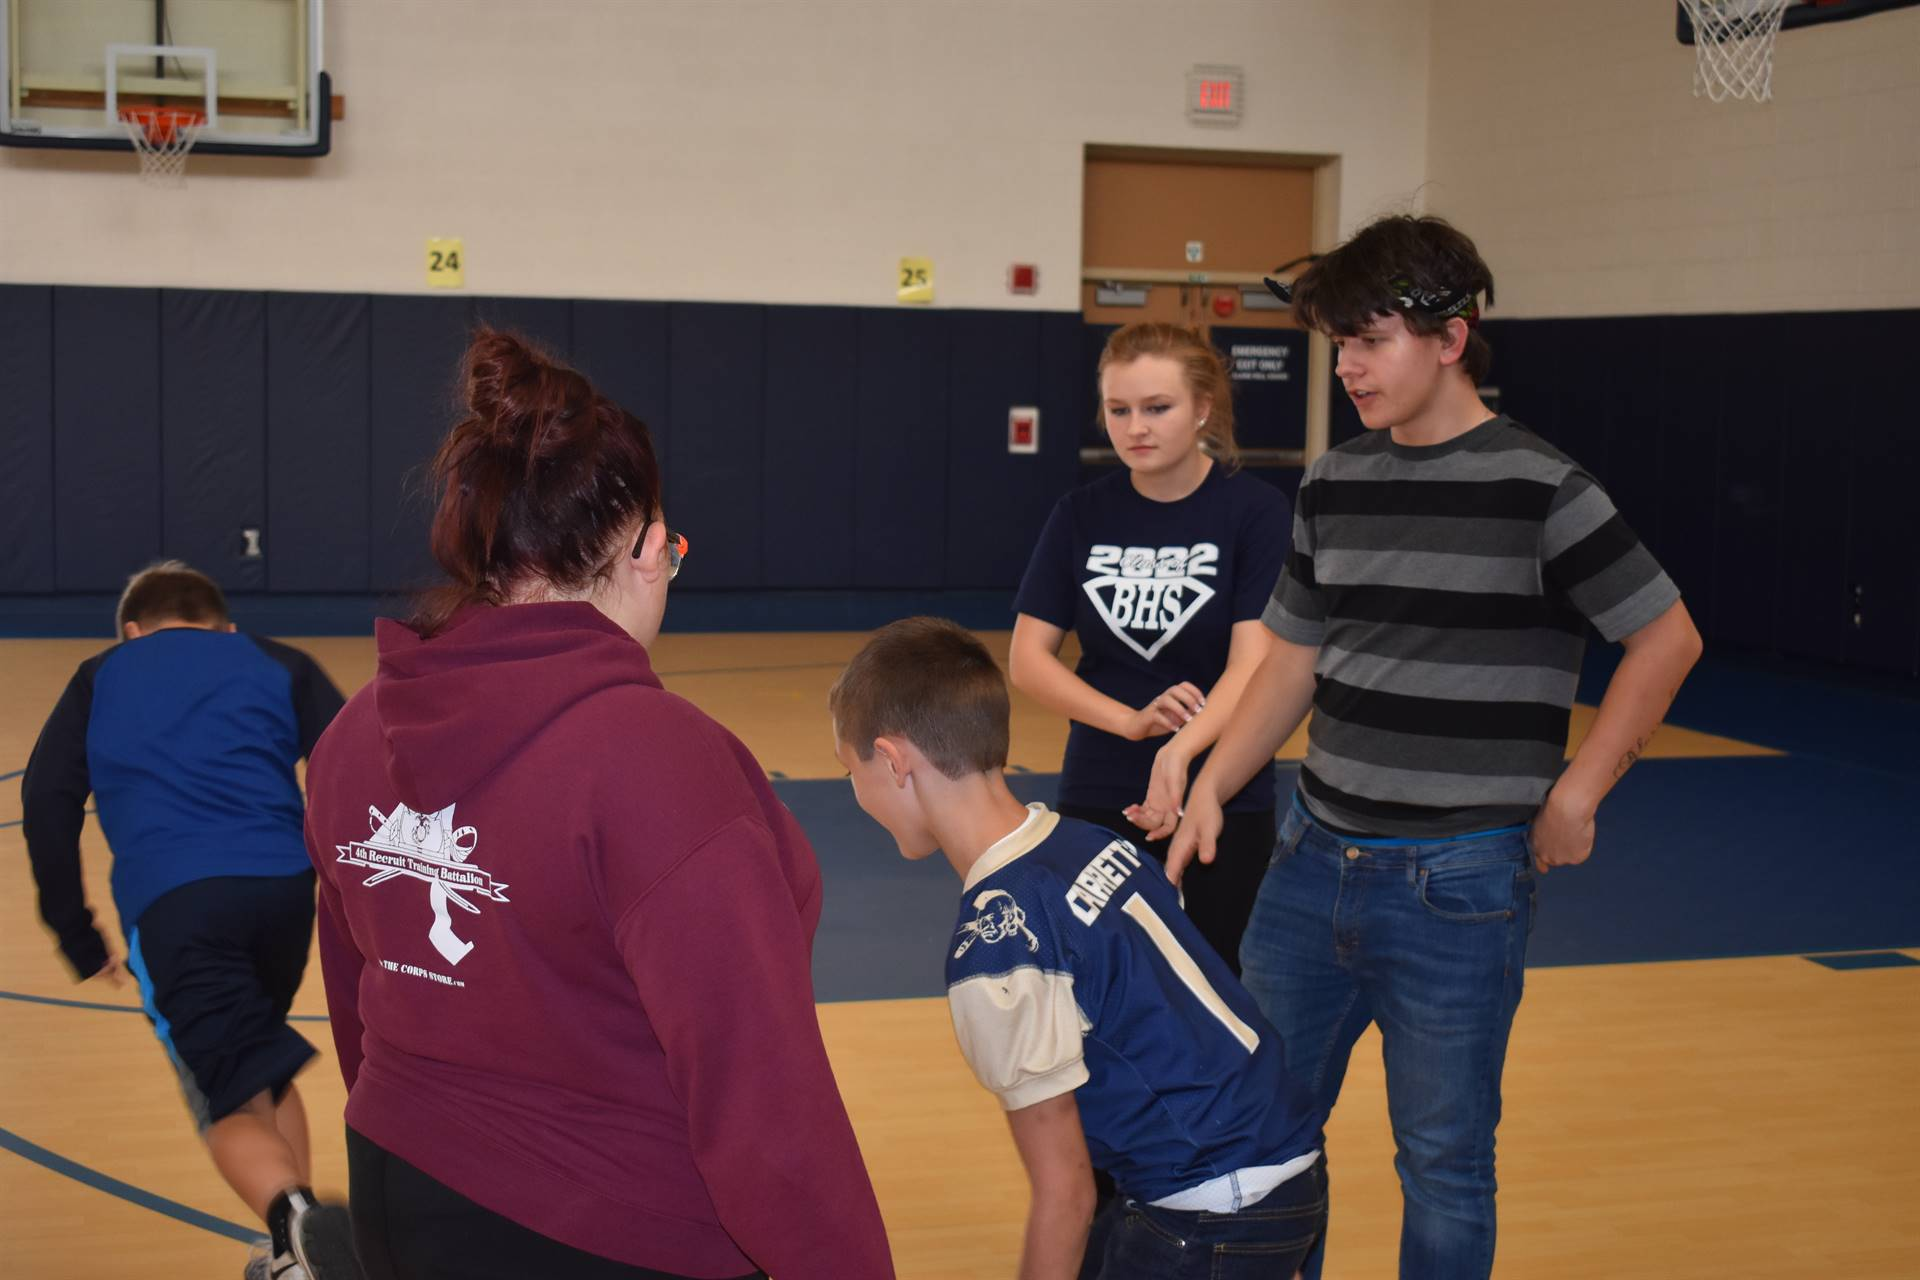 Brookfield High School students help out Brookfield Elementary School gym classes.